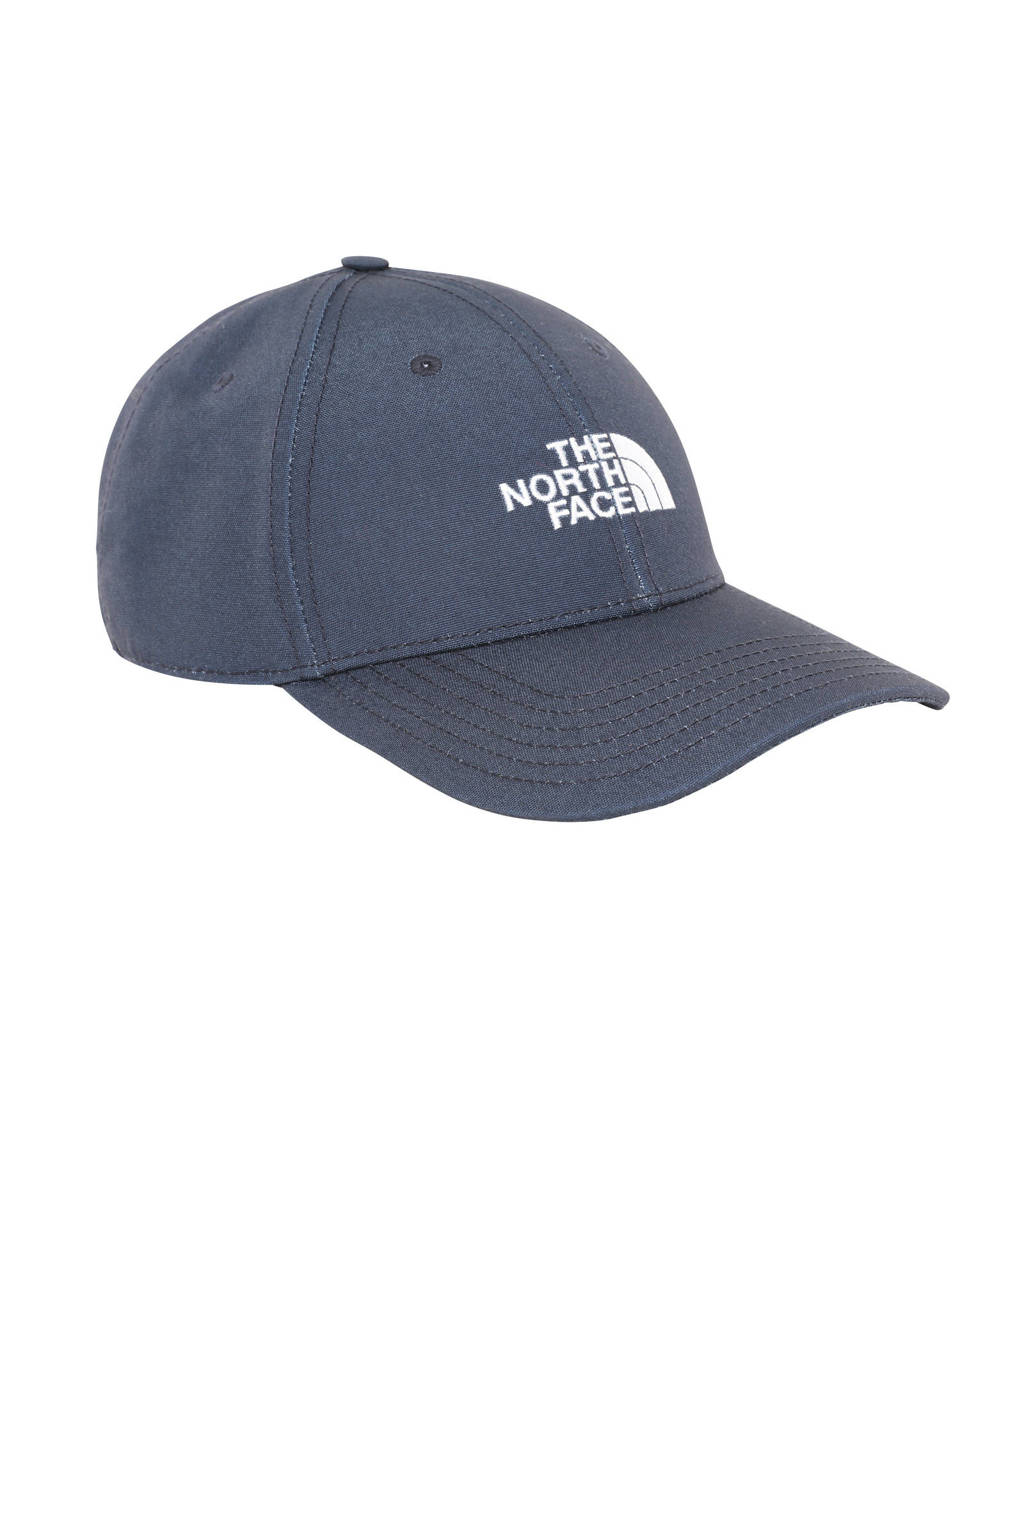 The North Face, Blauw